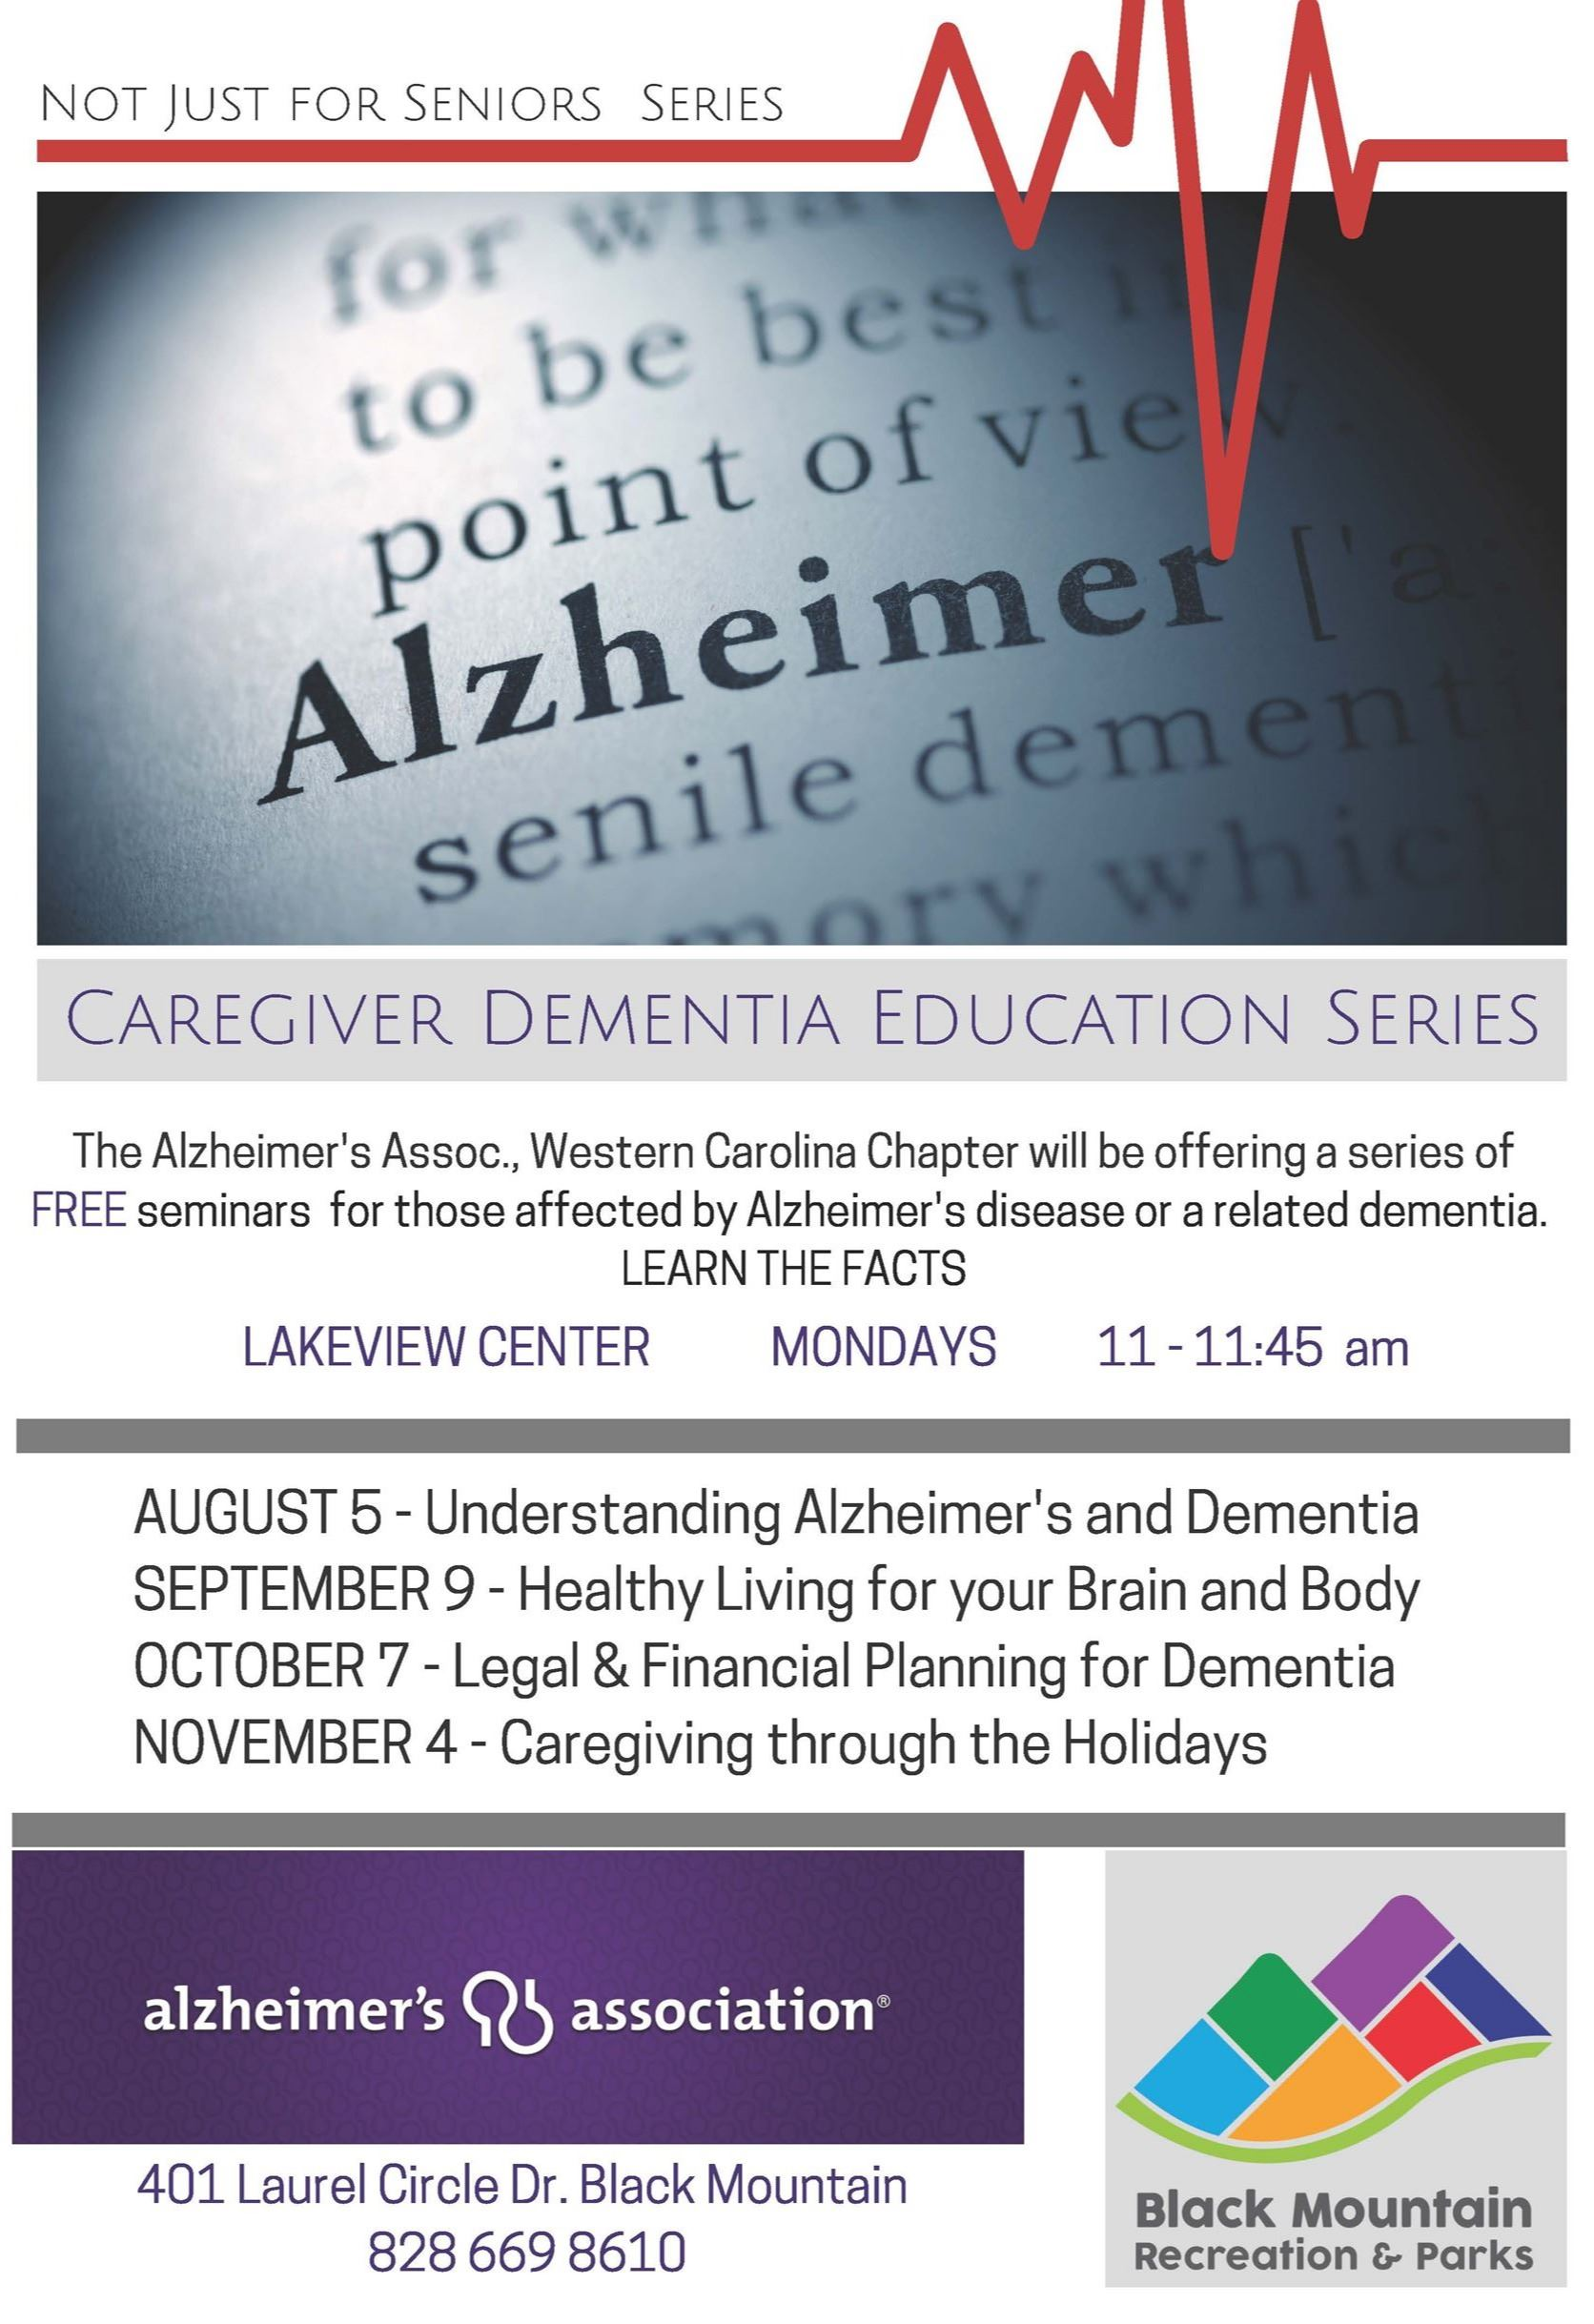 Caregiver Dementia Education Series